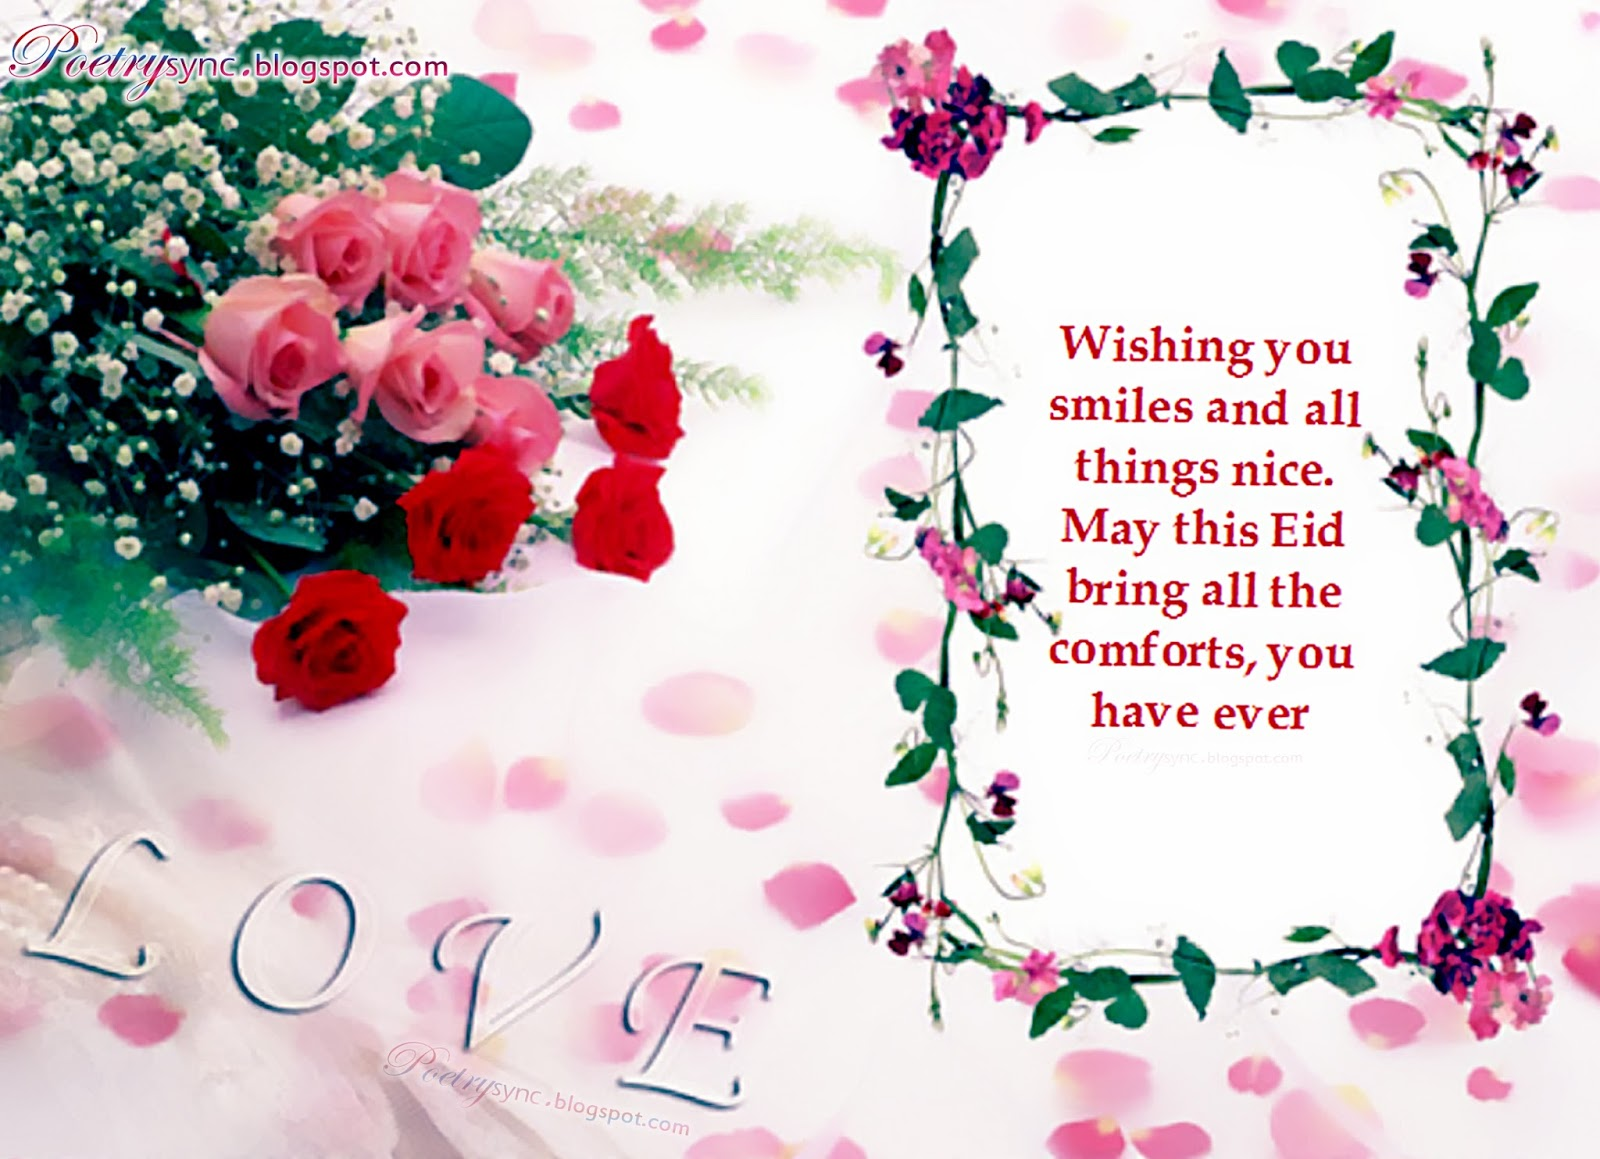 Best Lover Eid Al-Fitr Greeting - Happy-eid-mubarak-wishes-message-for-lovers-with-images%2B%25283%2529  Image_559640 .jpg